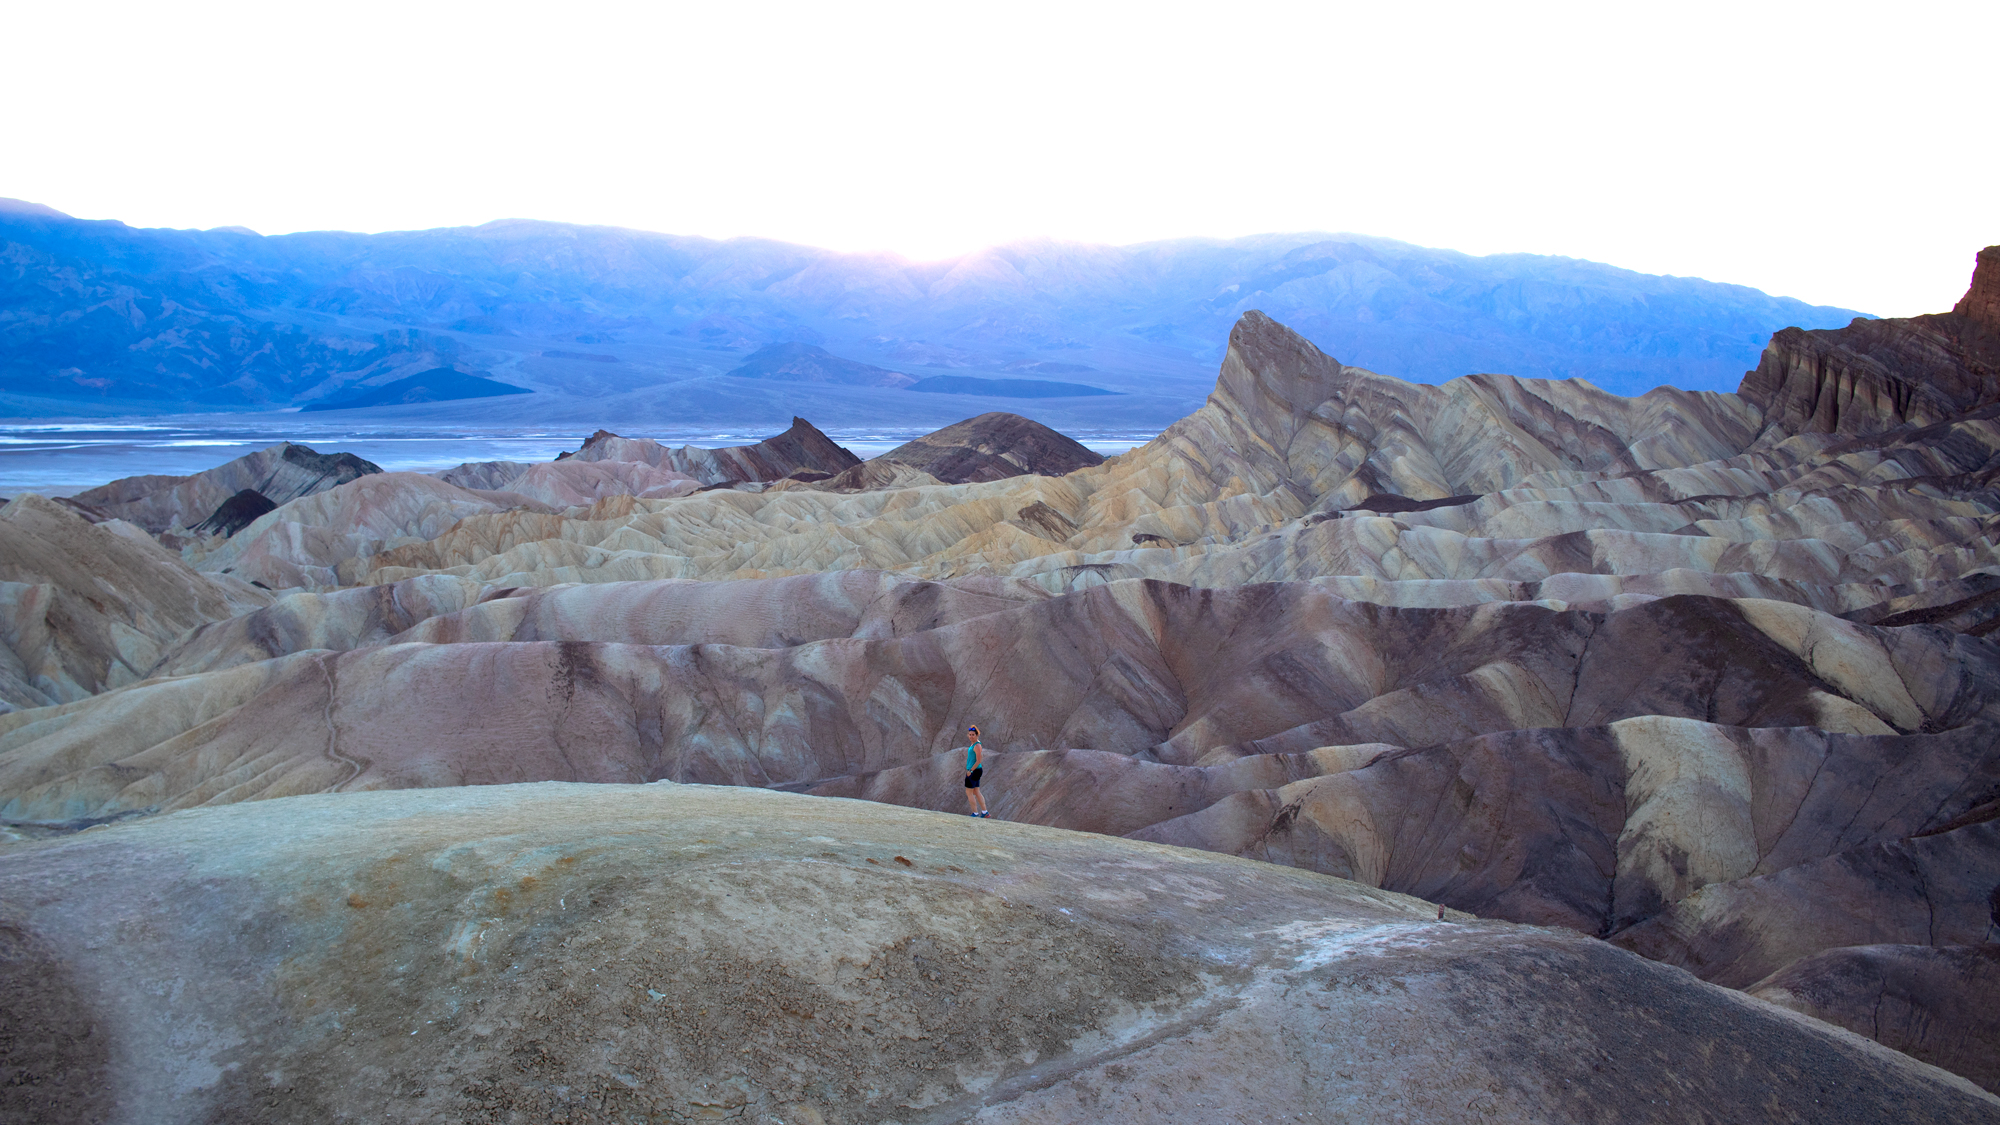 A lone hiker walk across the badlands at Zabriskie Point